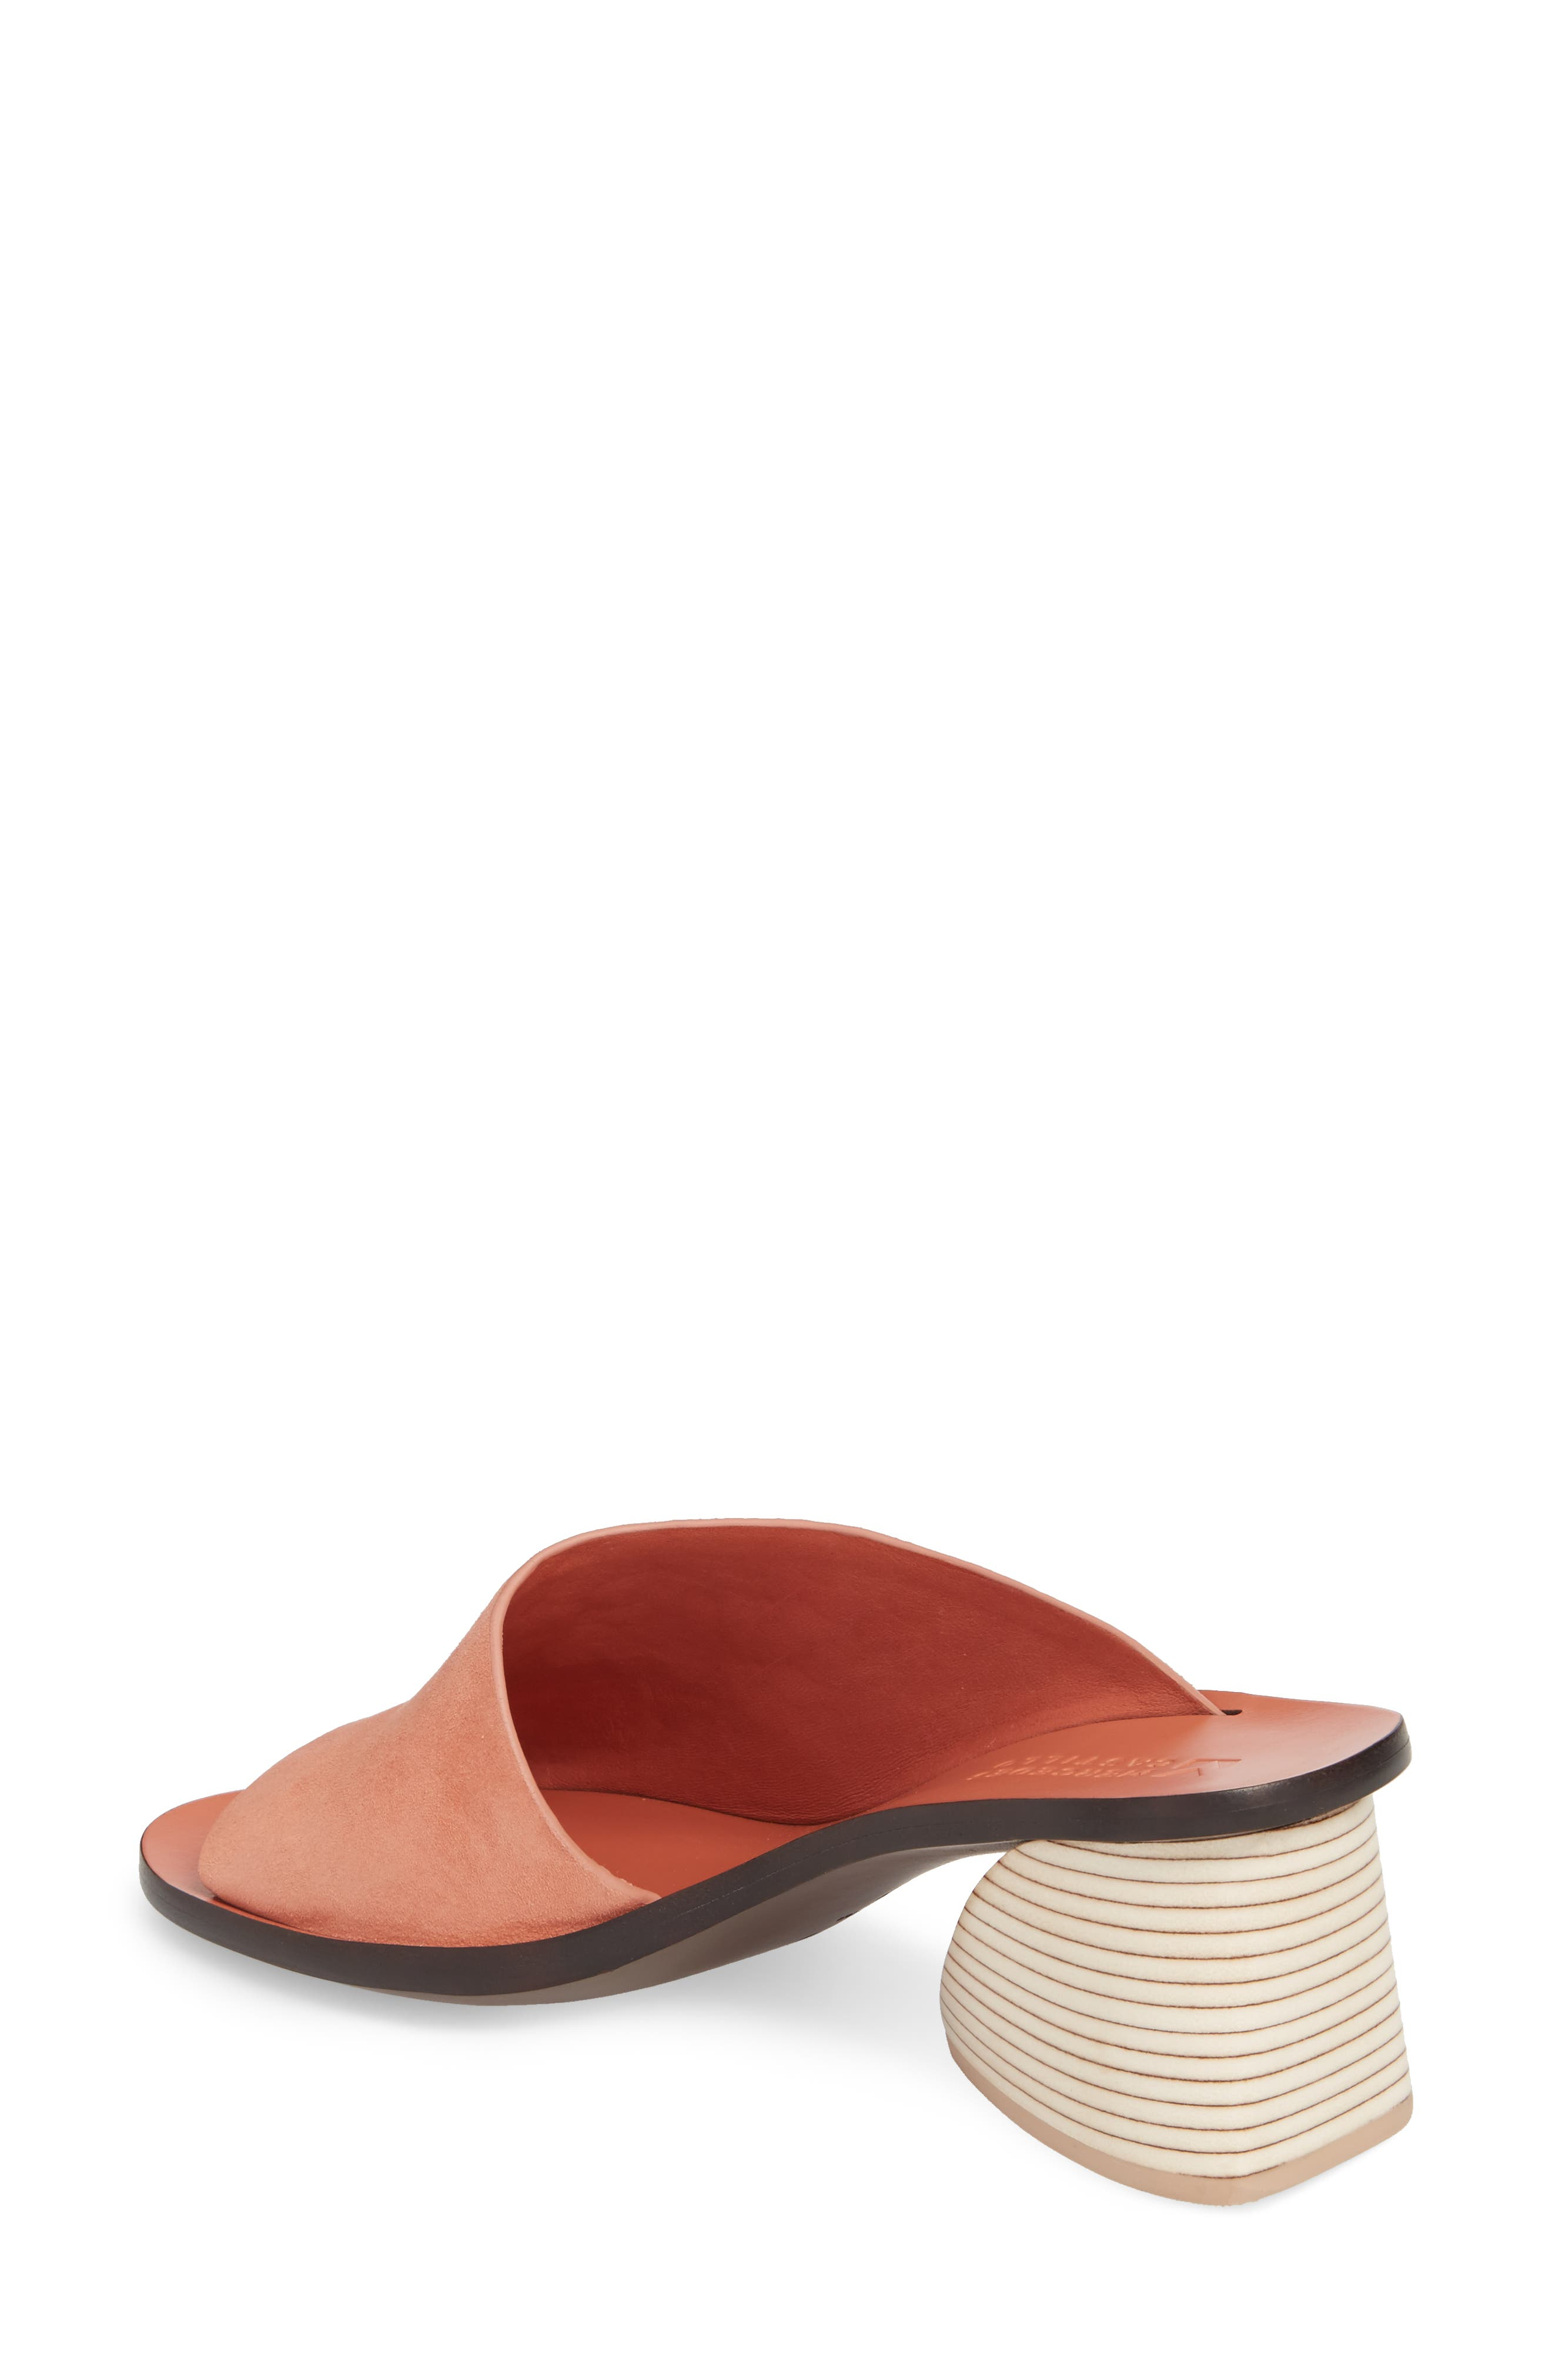 Izar Slide Sandal,                             Alternate thumbnail 2, color,                             Rose Suede